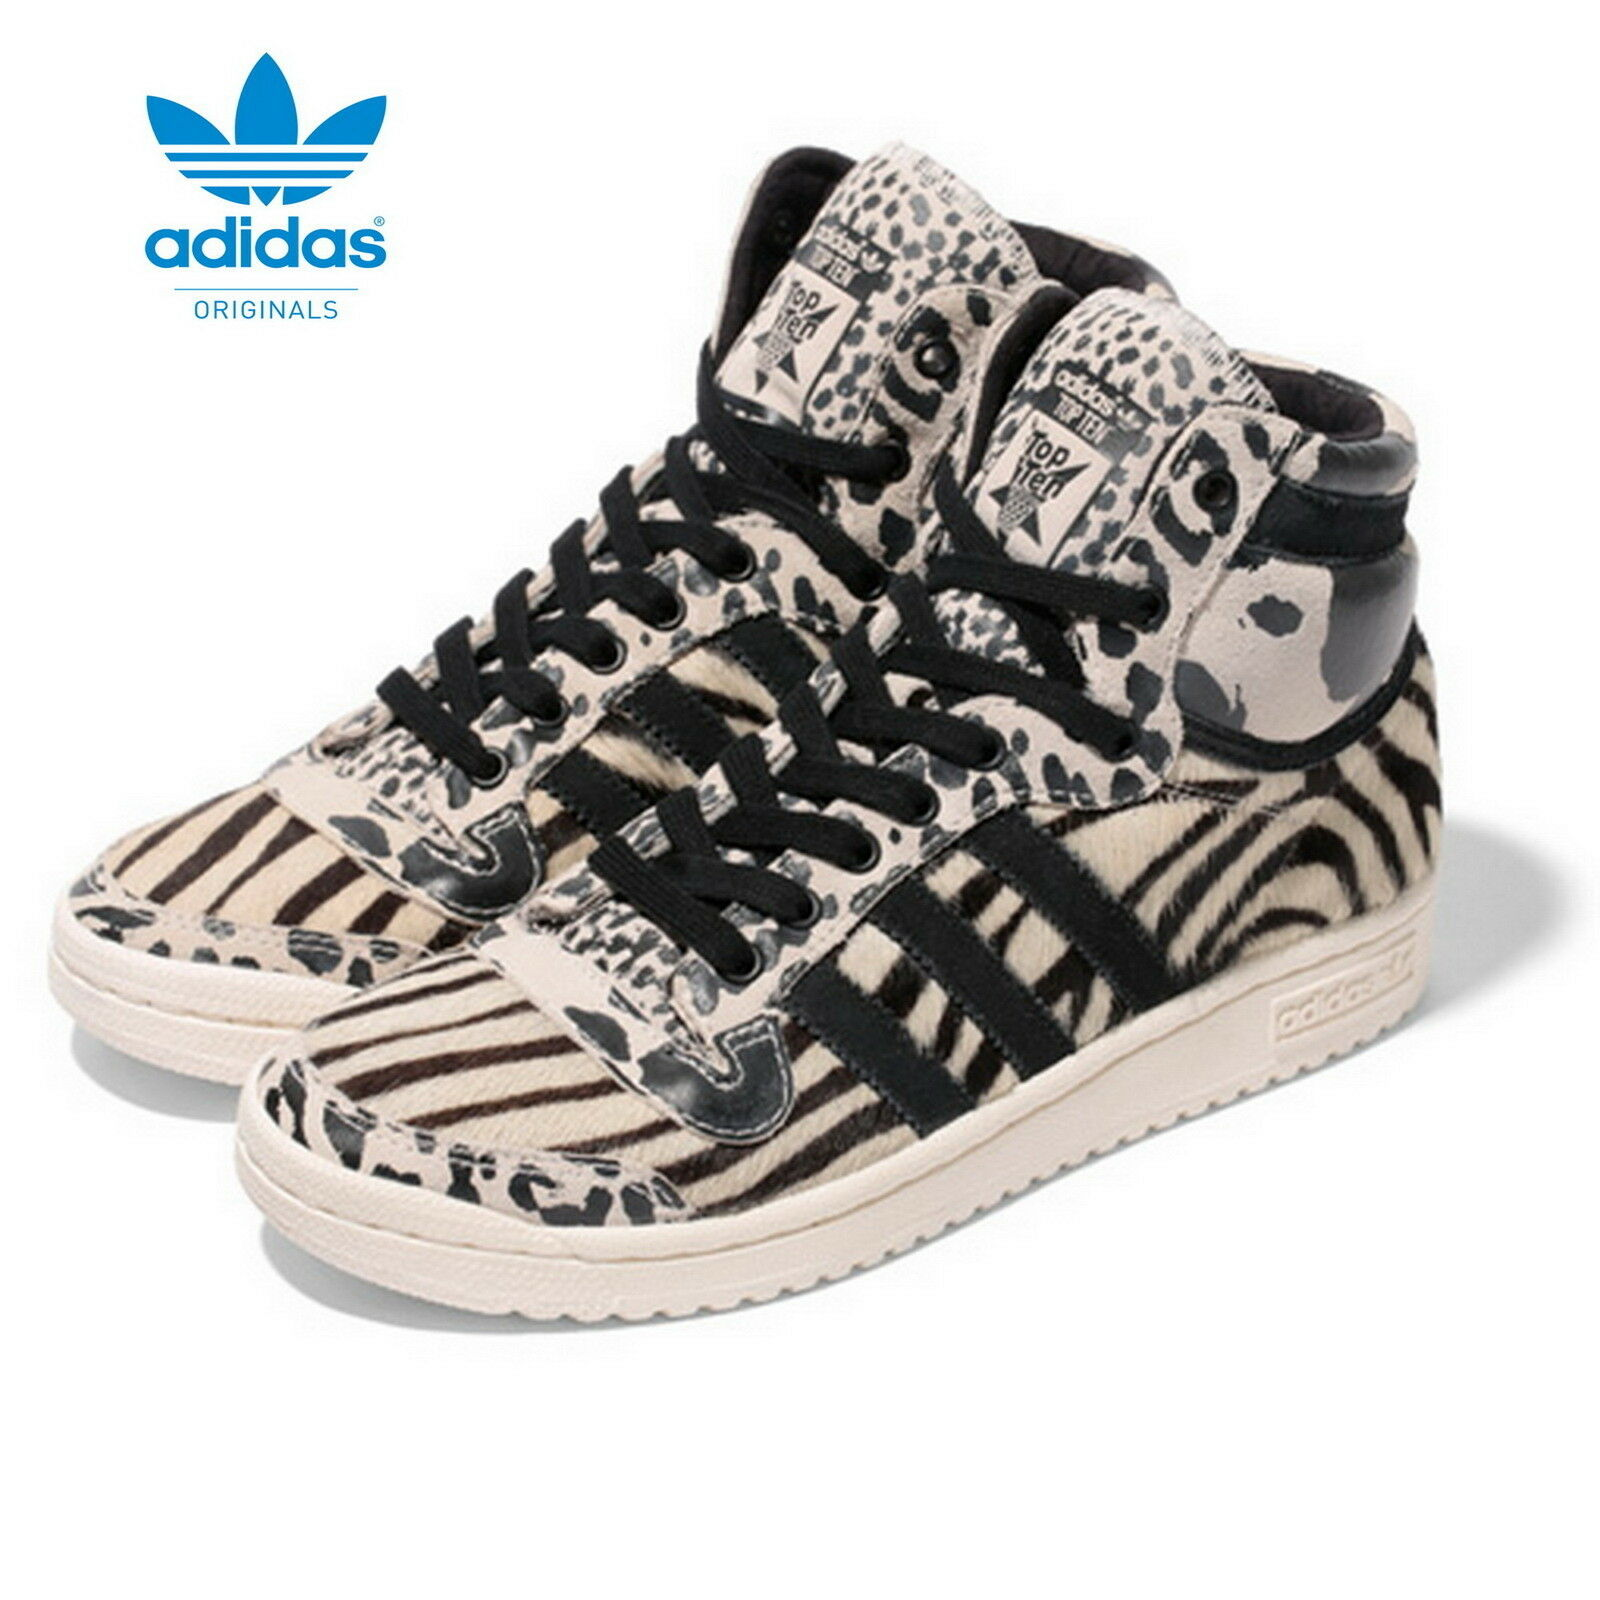 adidas TOP TEN HI Damen Originals Animal Muster M25118